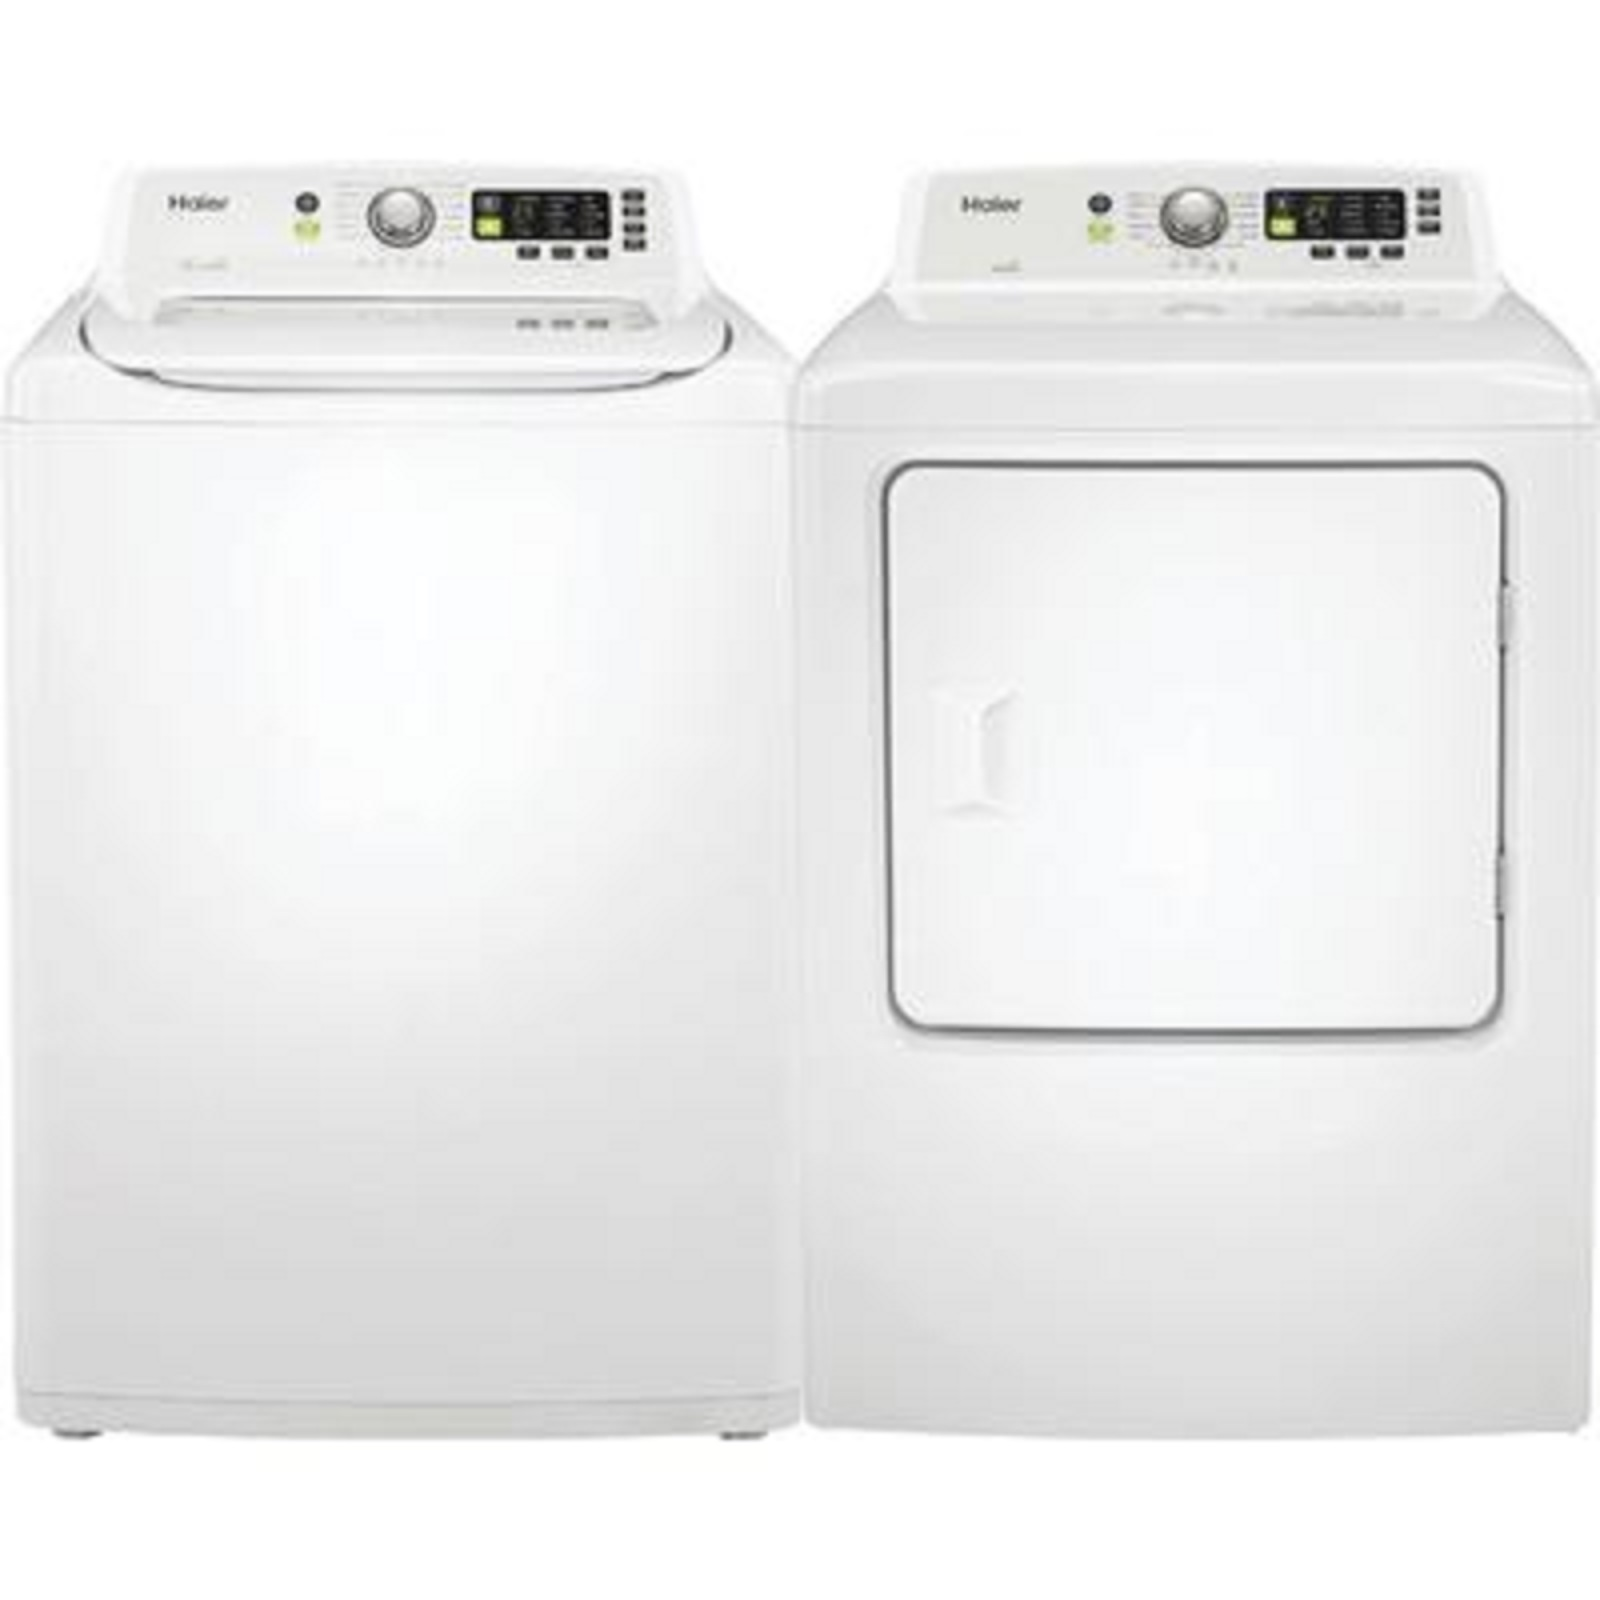 Haier 4.1 cu. ft. Washer and 6.7 cu. ft. Gas Dryer